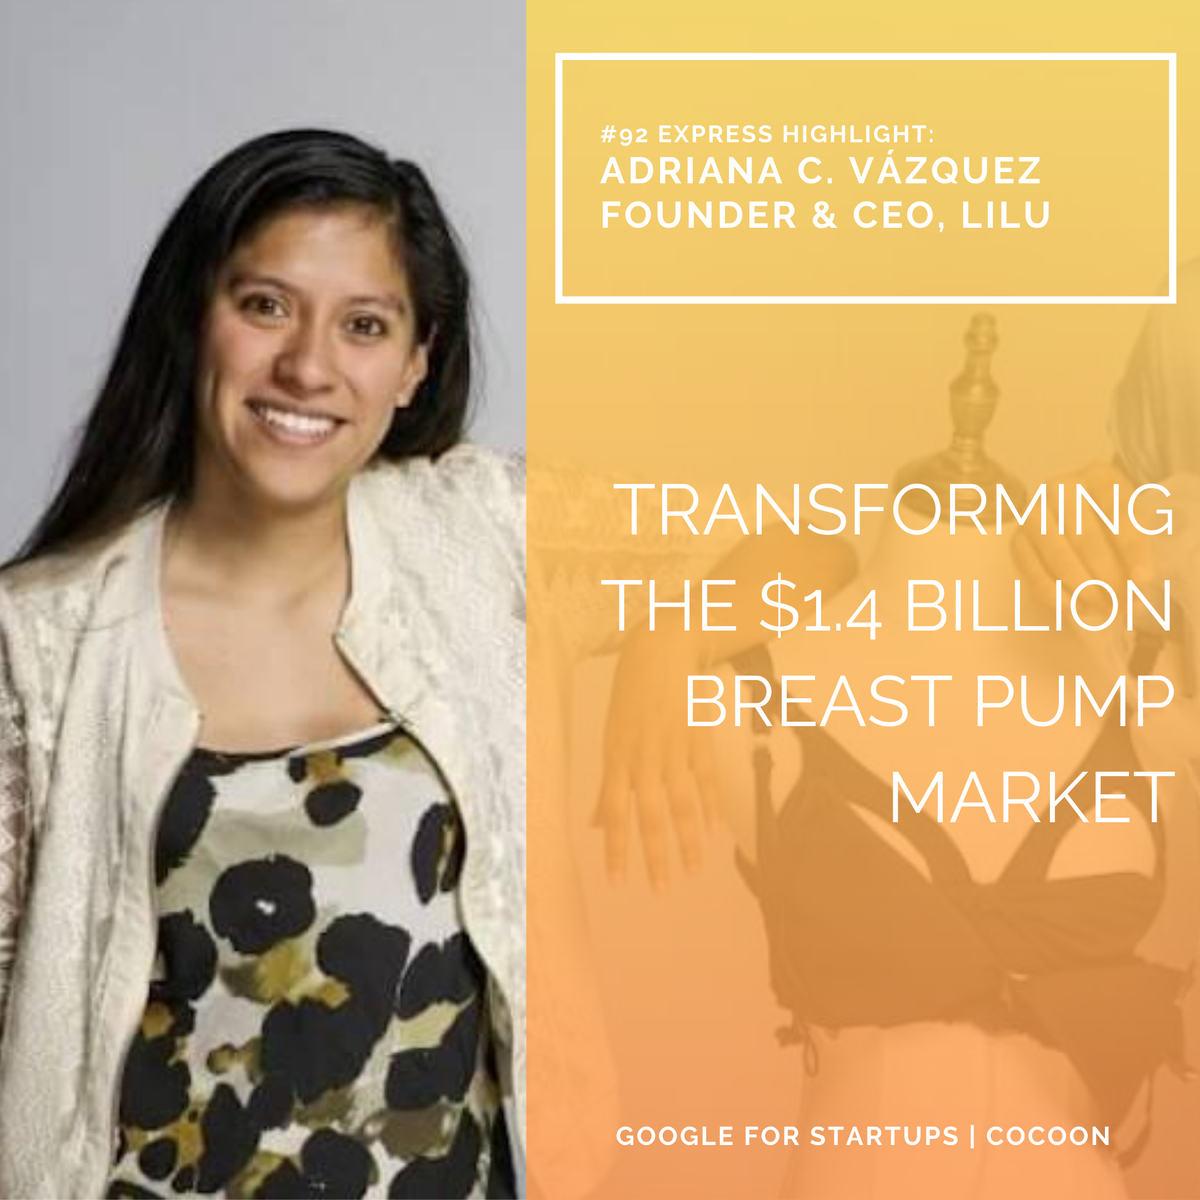 So excited for what Adriana is reinventing @wearliluThe first hands-free pumping bra to help nursing and breastfeeding moms pump more milk. Awesome read @thephilacitizen - https://t.co/O6YpN8ttvC  @GoogleStartups #womenintech  #WomenSupportingWomen #womeninhardware #bethechange https://t.co/KwQumUGUcJ